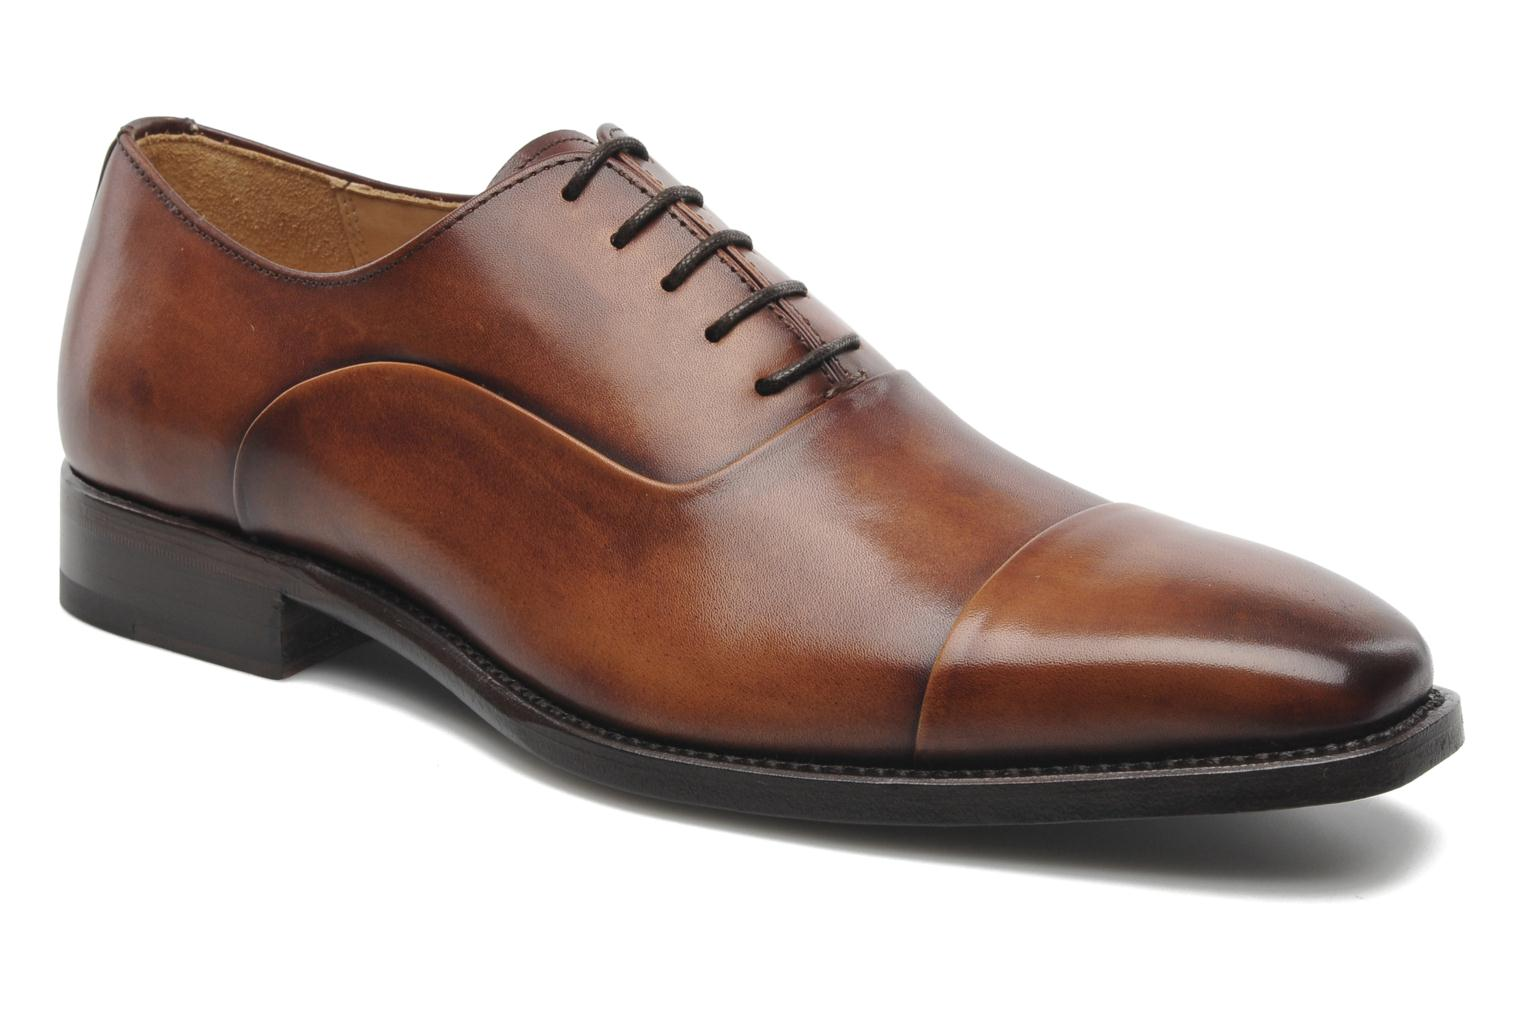 Marvin&Co Luxe Weloofu - Cousu Goodyear (Marron) - Chaussures à lacets chez Sarenza (190577)